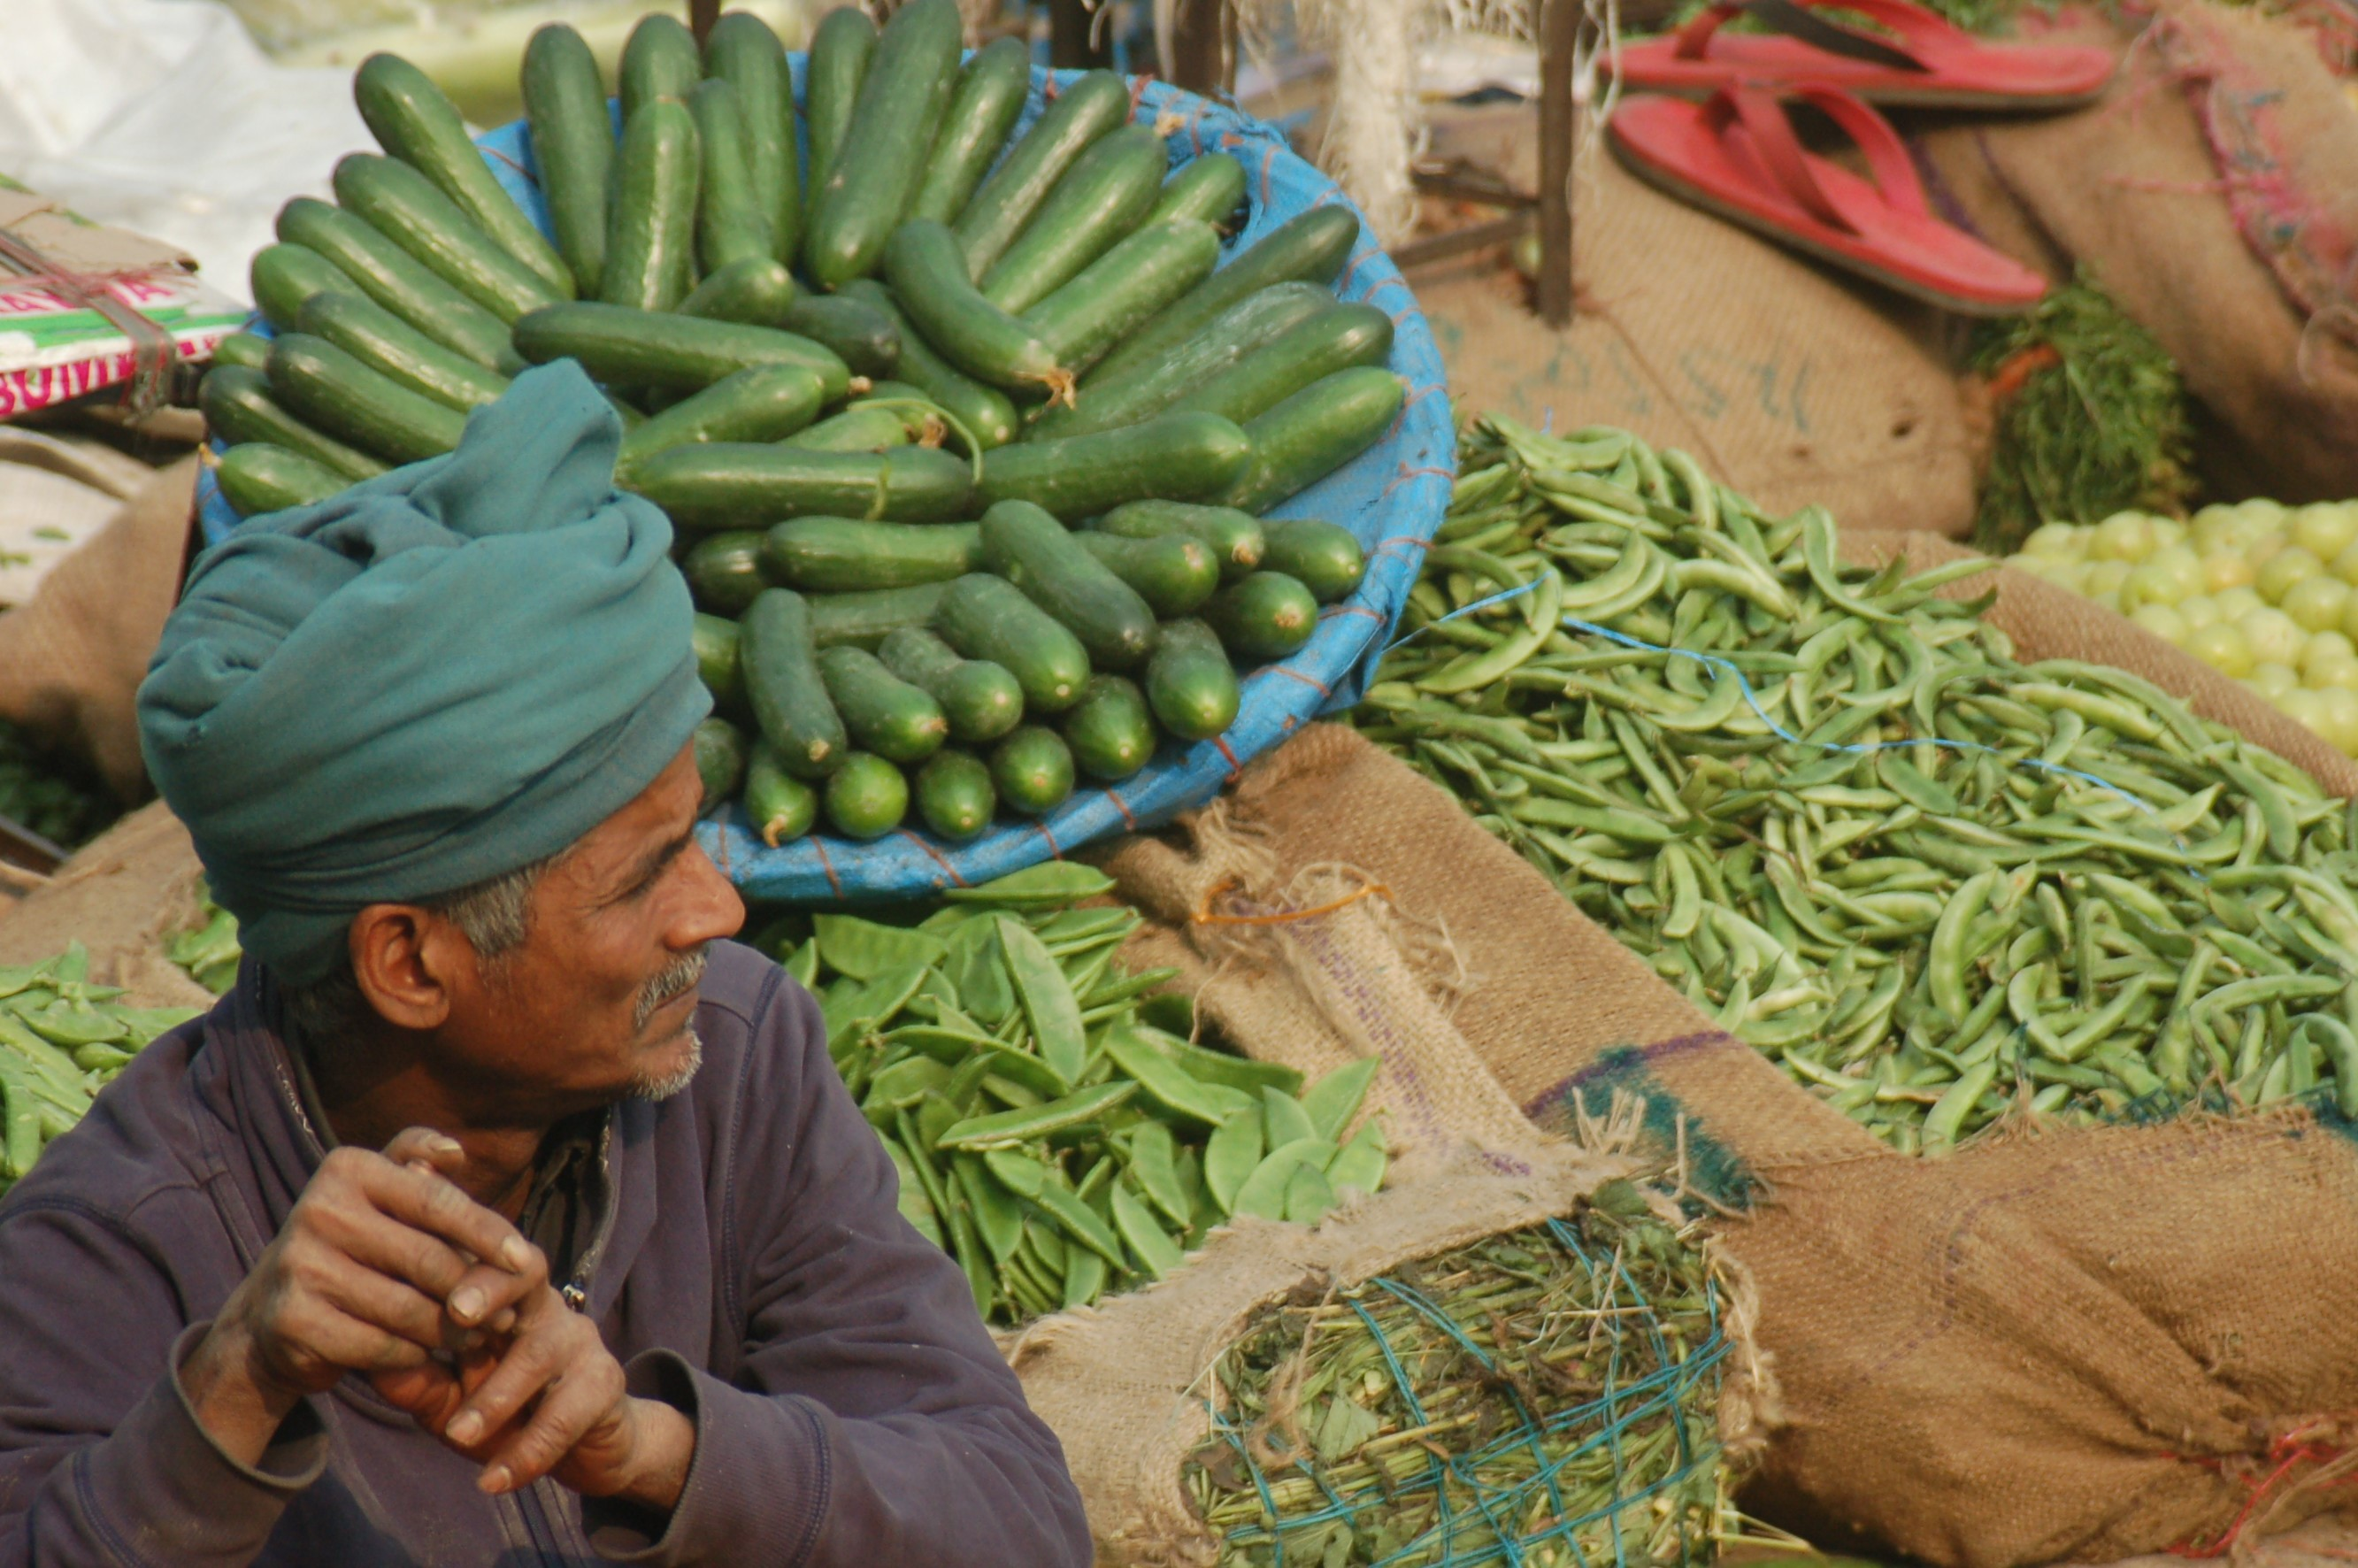 From Food Security to Nutrition Security in India: A Food Systems Perspective